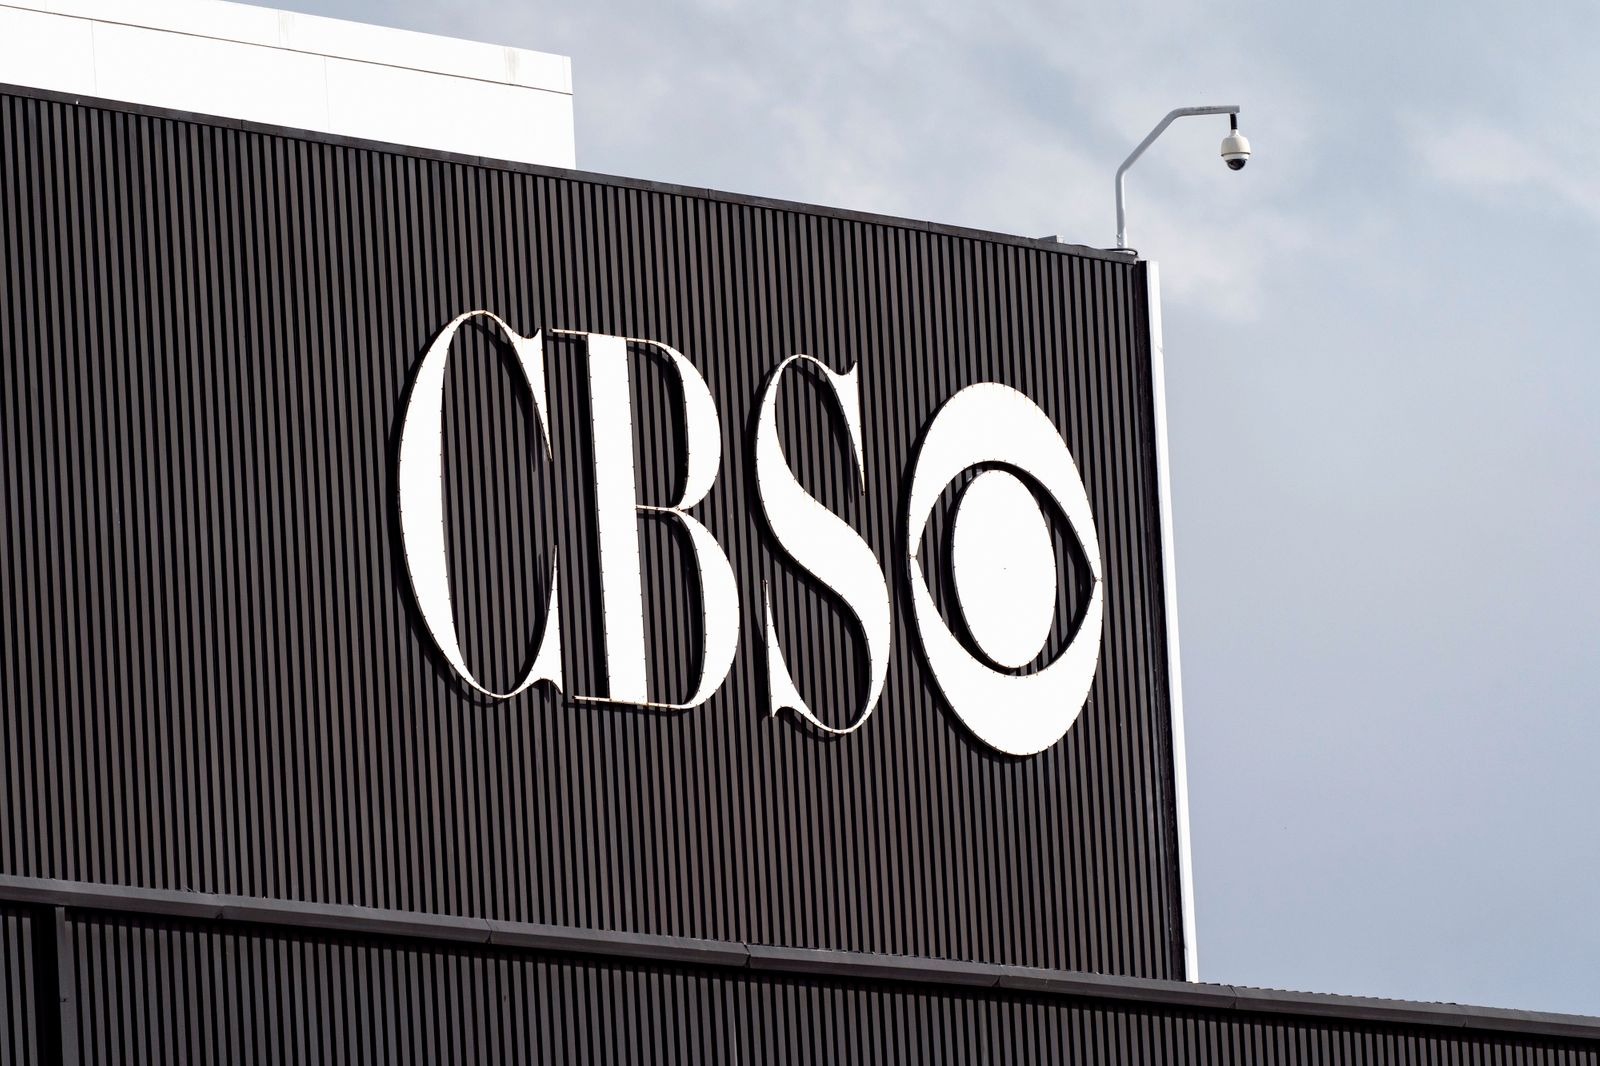 CBS logo seen at the CBS Television City Studio in Los